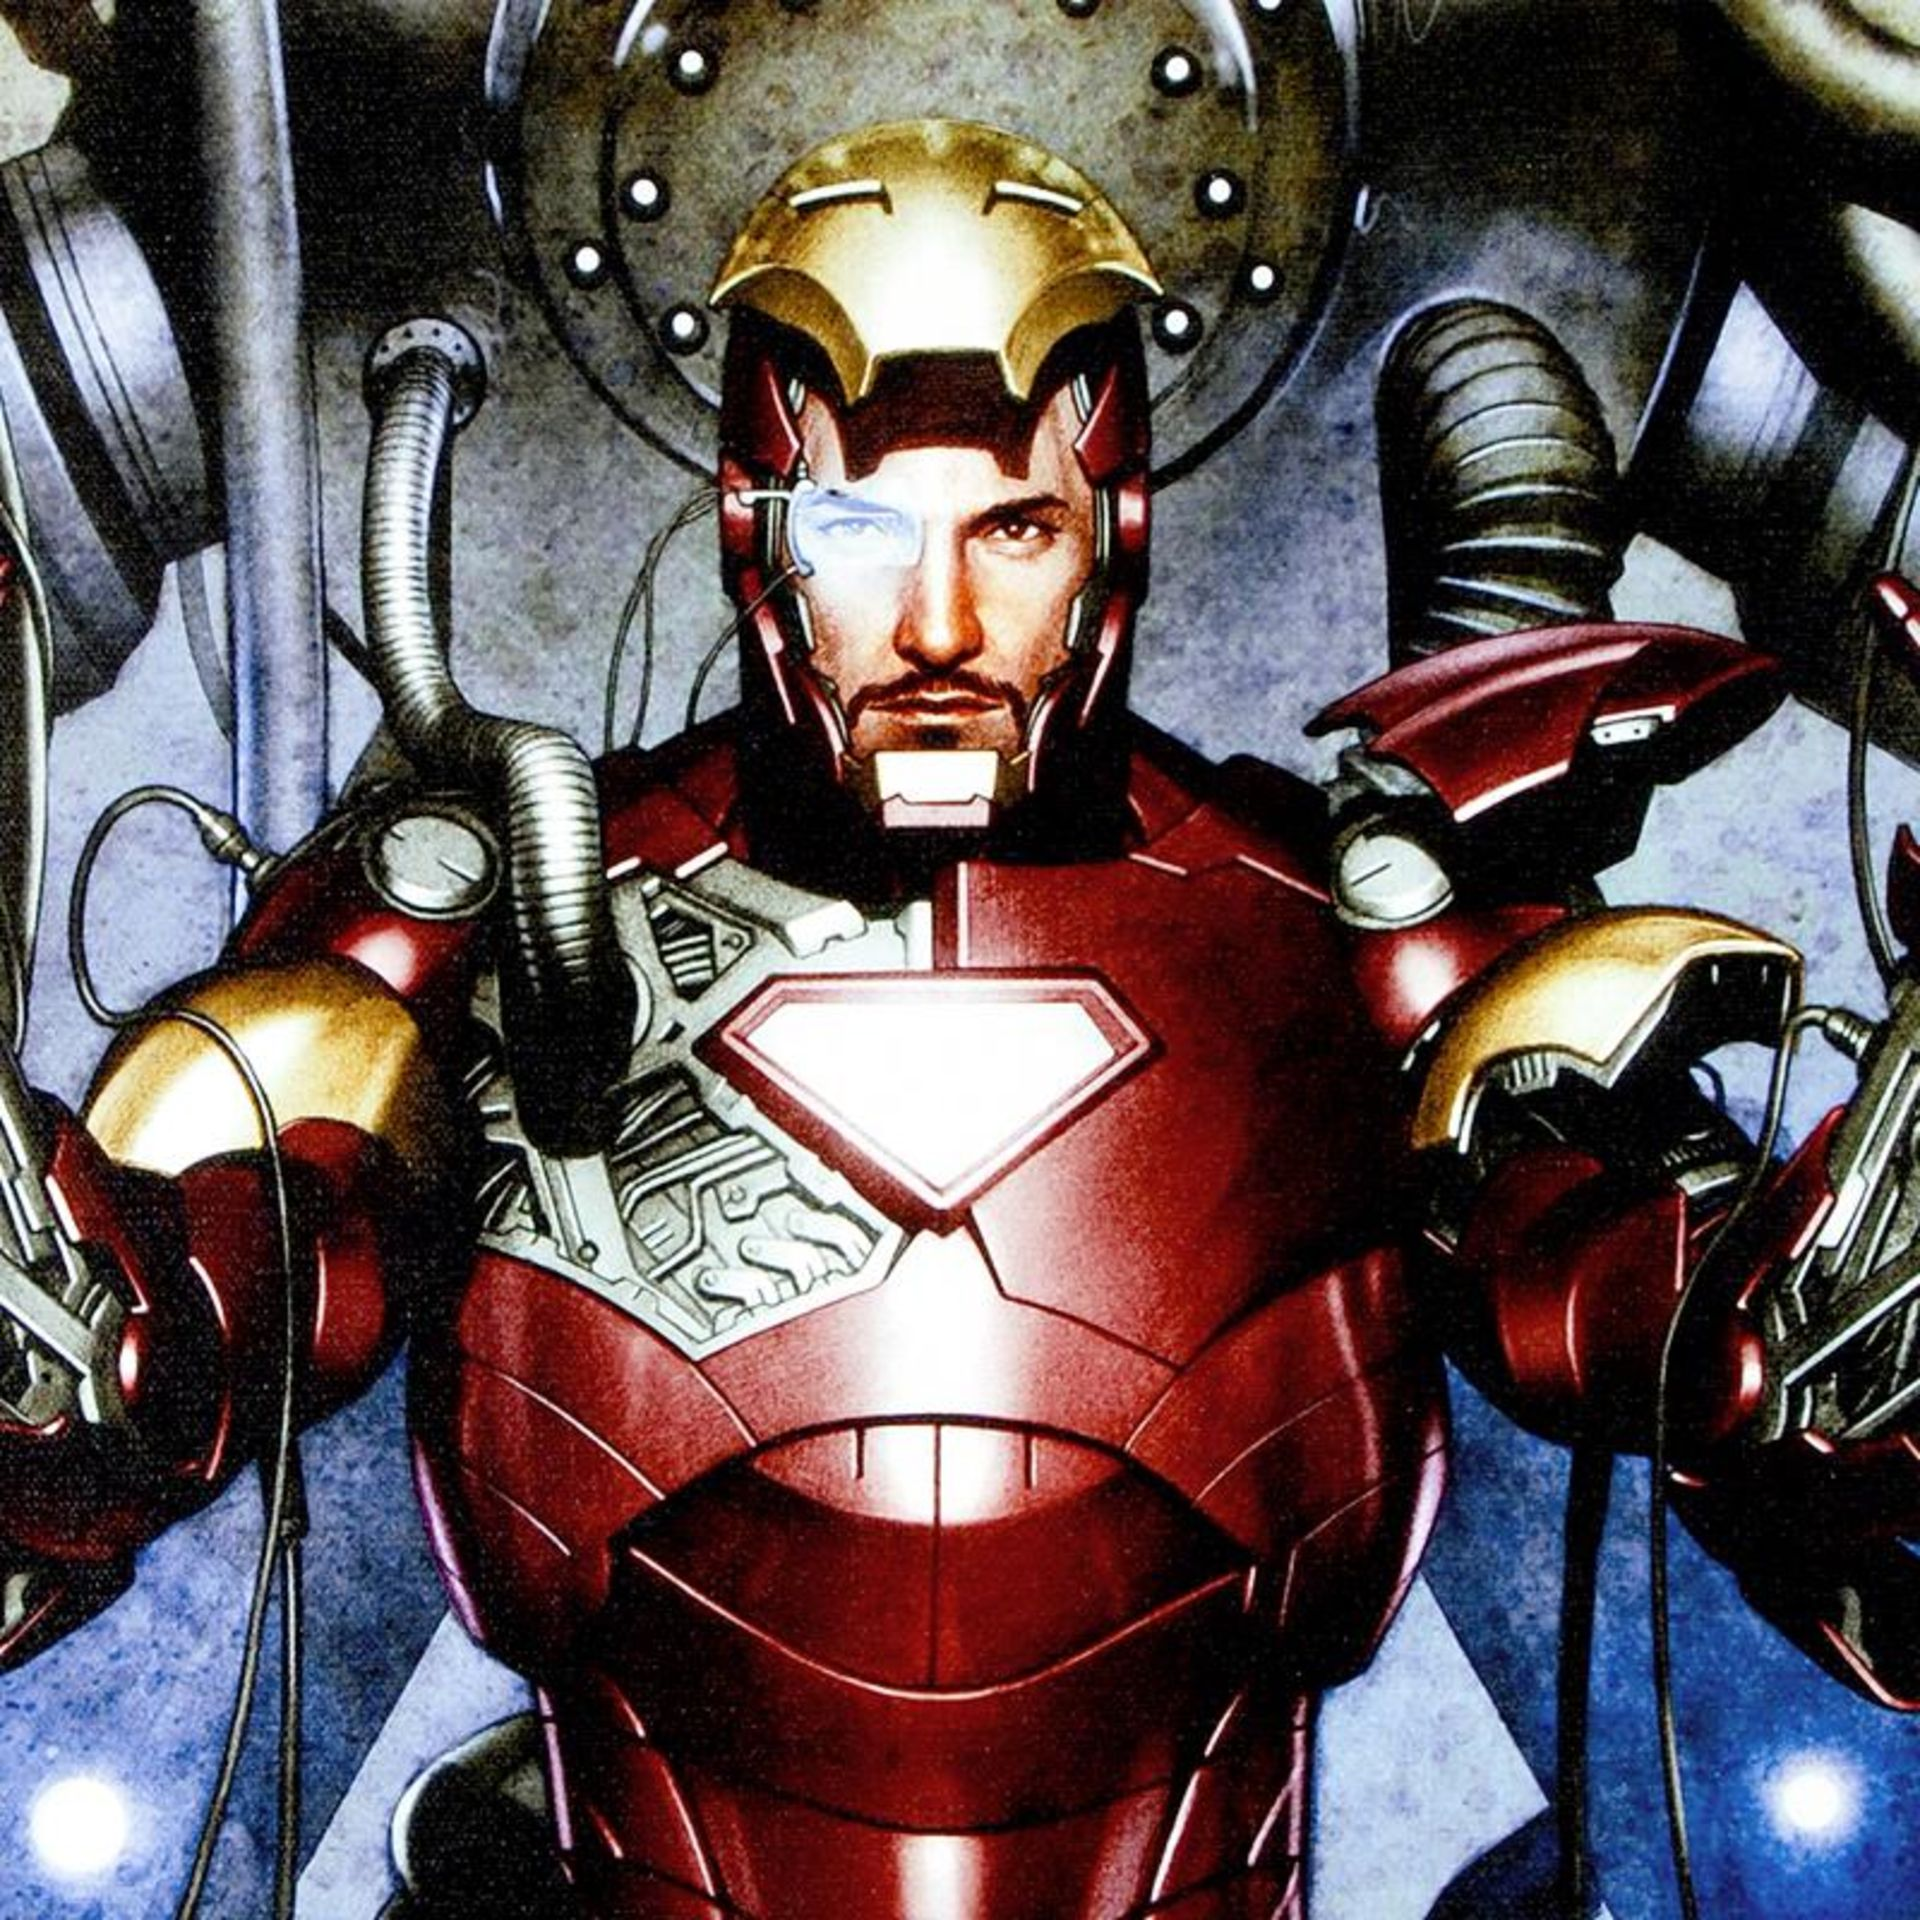 """Stan Lee Signed, """"Iron Man: Director of S.H.I.E.L.D. #31"""" Numbered Marvel Comics - Image 2 of 2"""